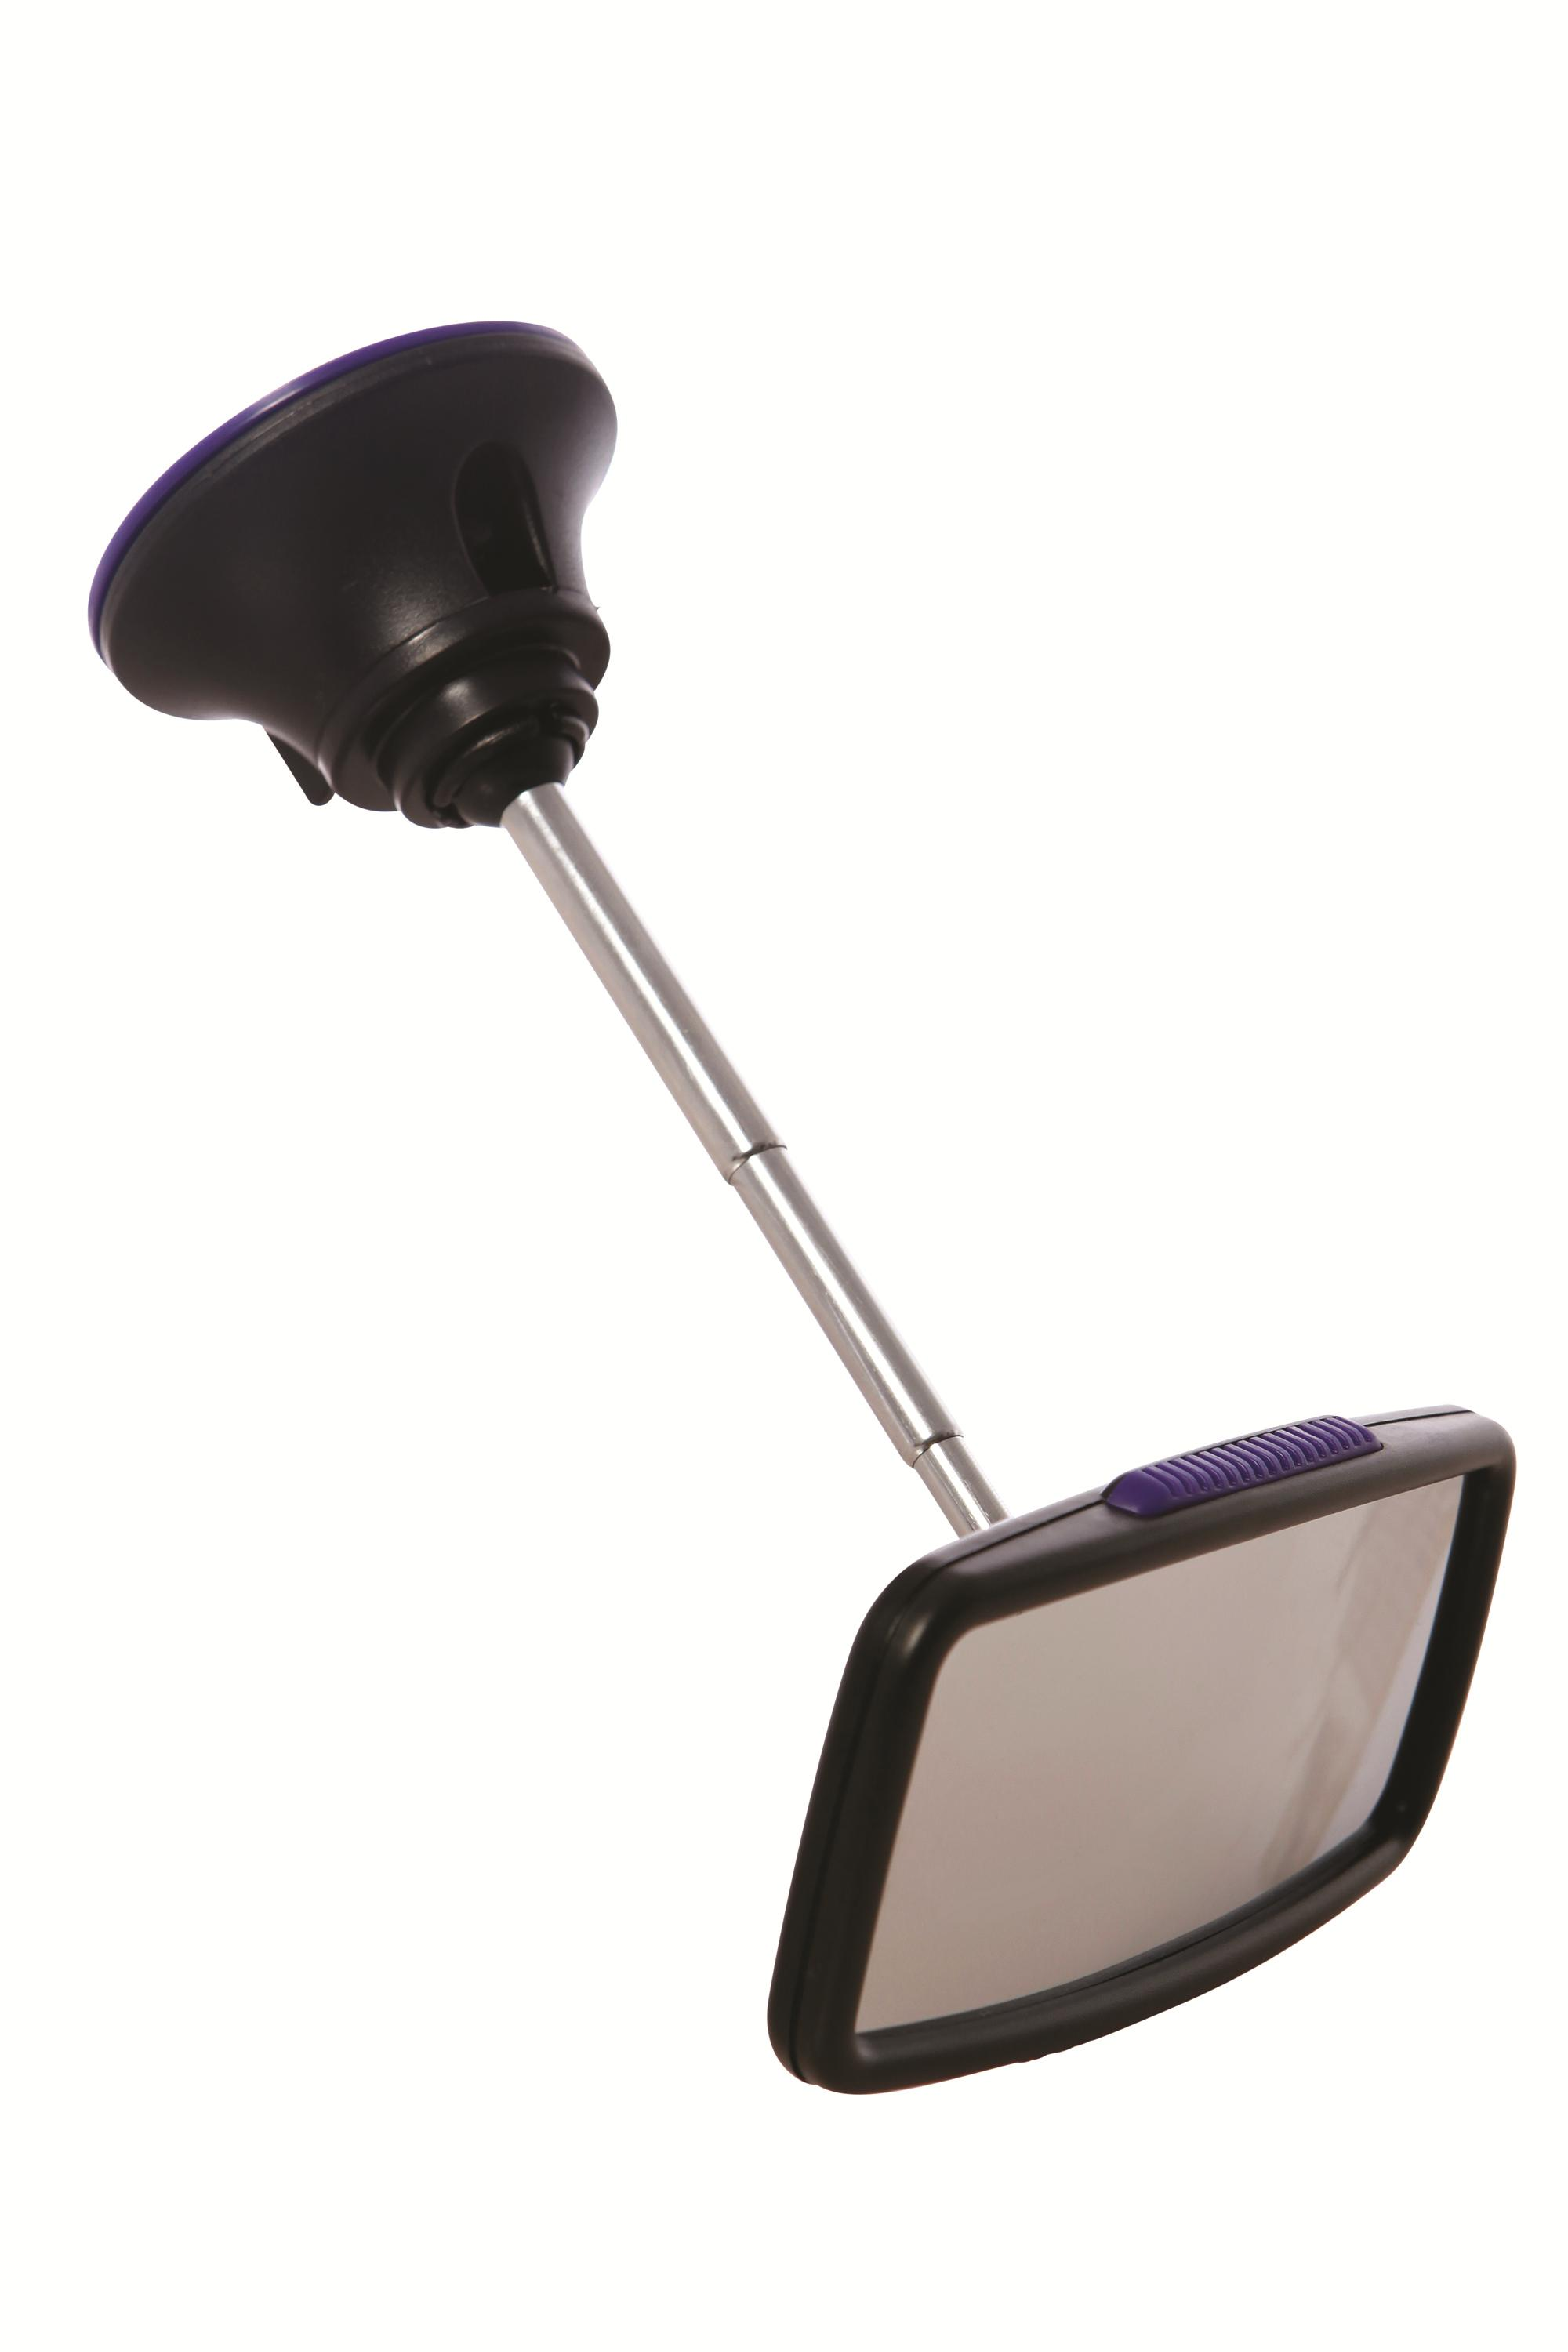 Dreambaby Deluxe View Mirror by Dreambaby